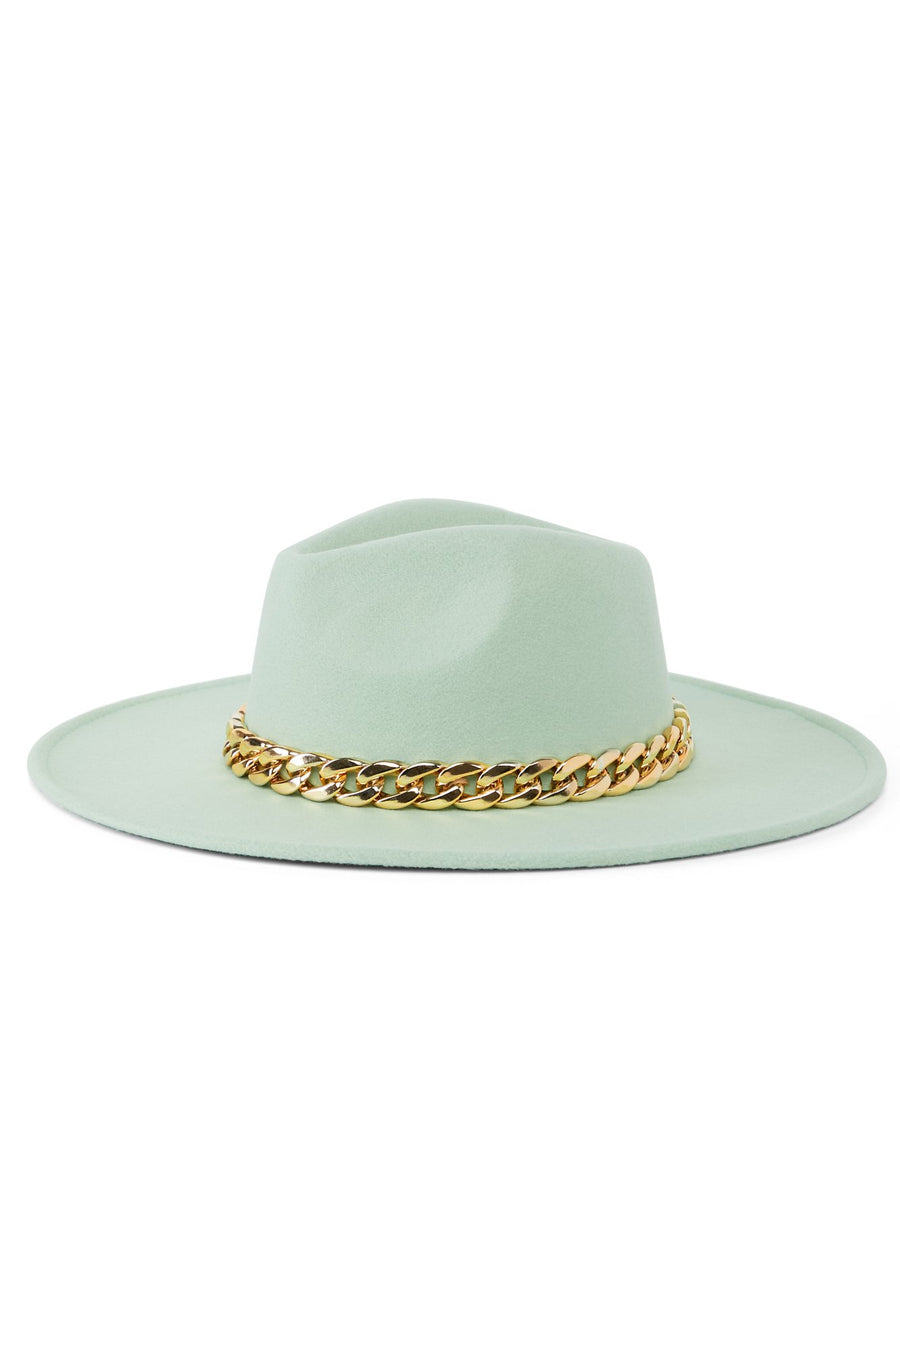 Chain Of Events Hat - Sage